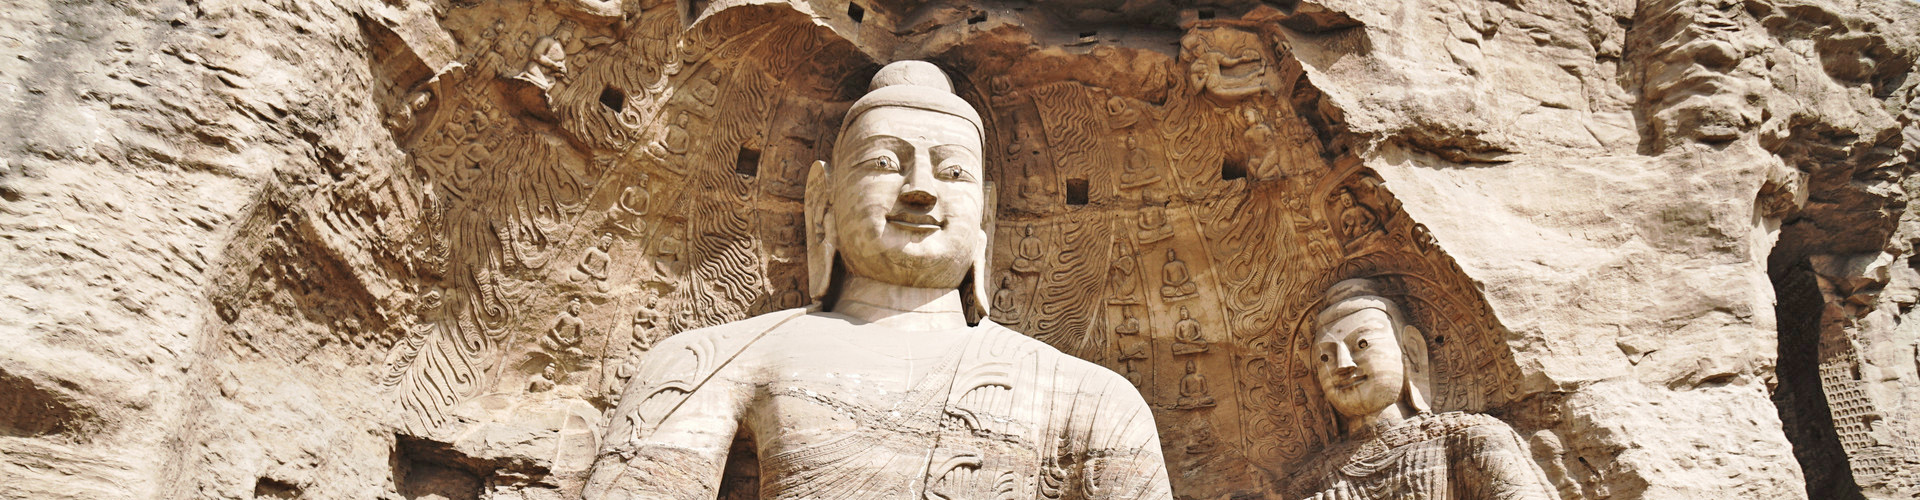 Datong Buddhist Culture Tour from Beijing